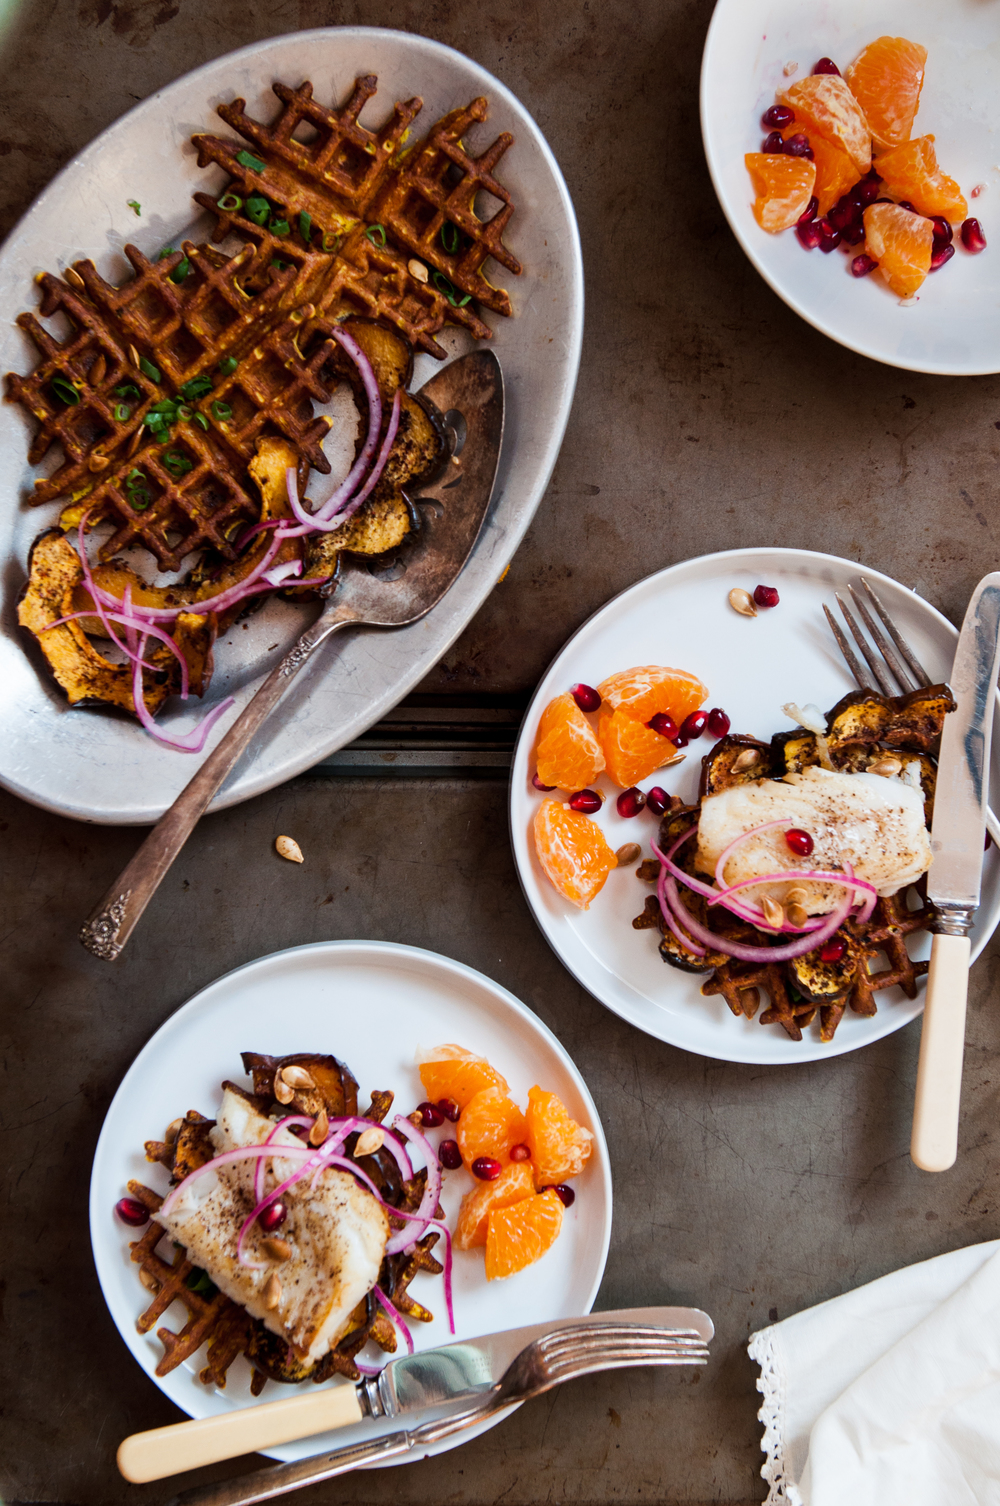 TURMERIC TOASTED CHICKPEA AND ACORN SQUASH WAFFLES